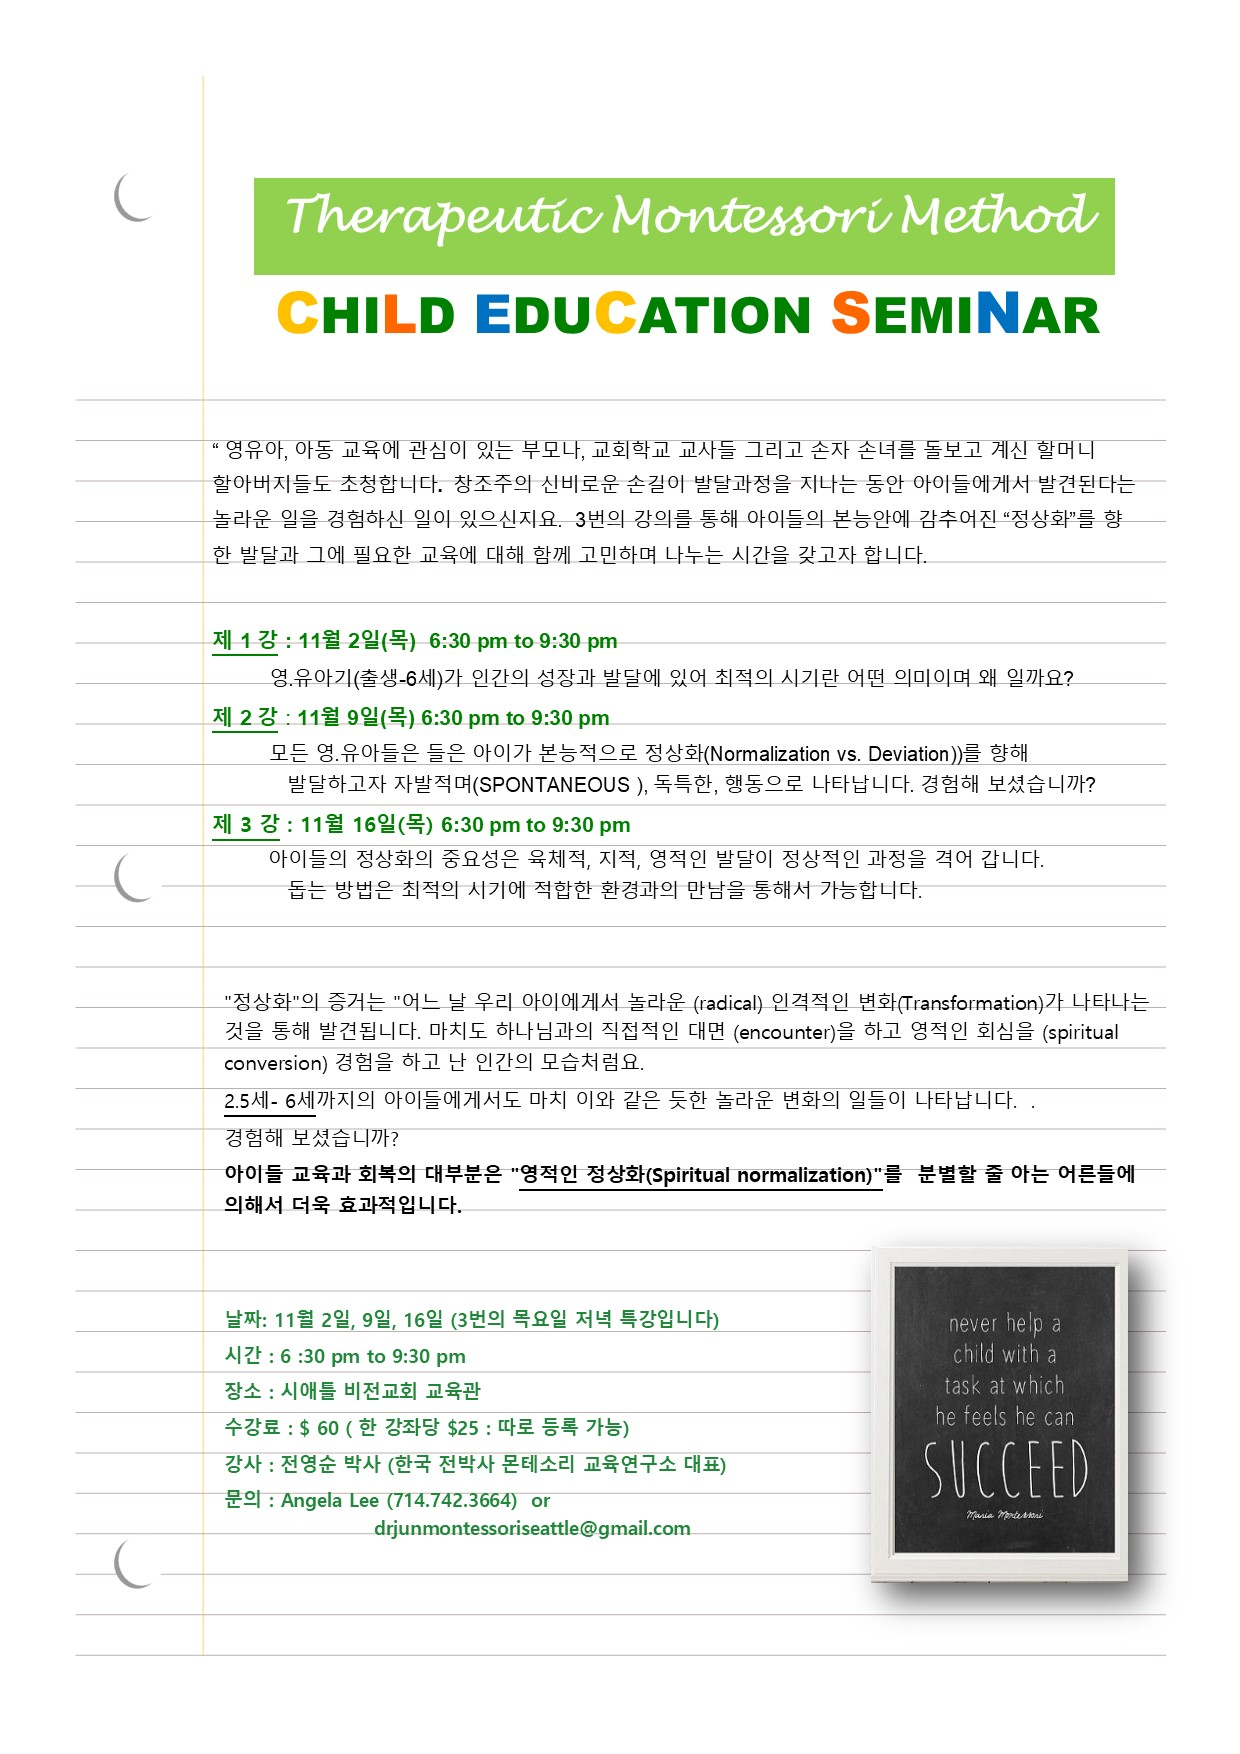 CHILD EDUCATION SEMINAR.jpg